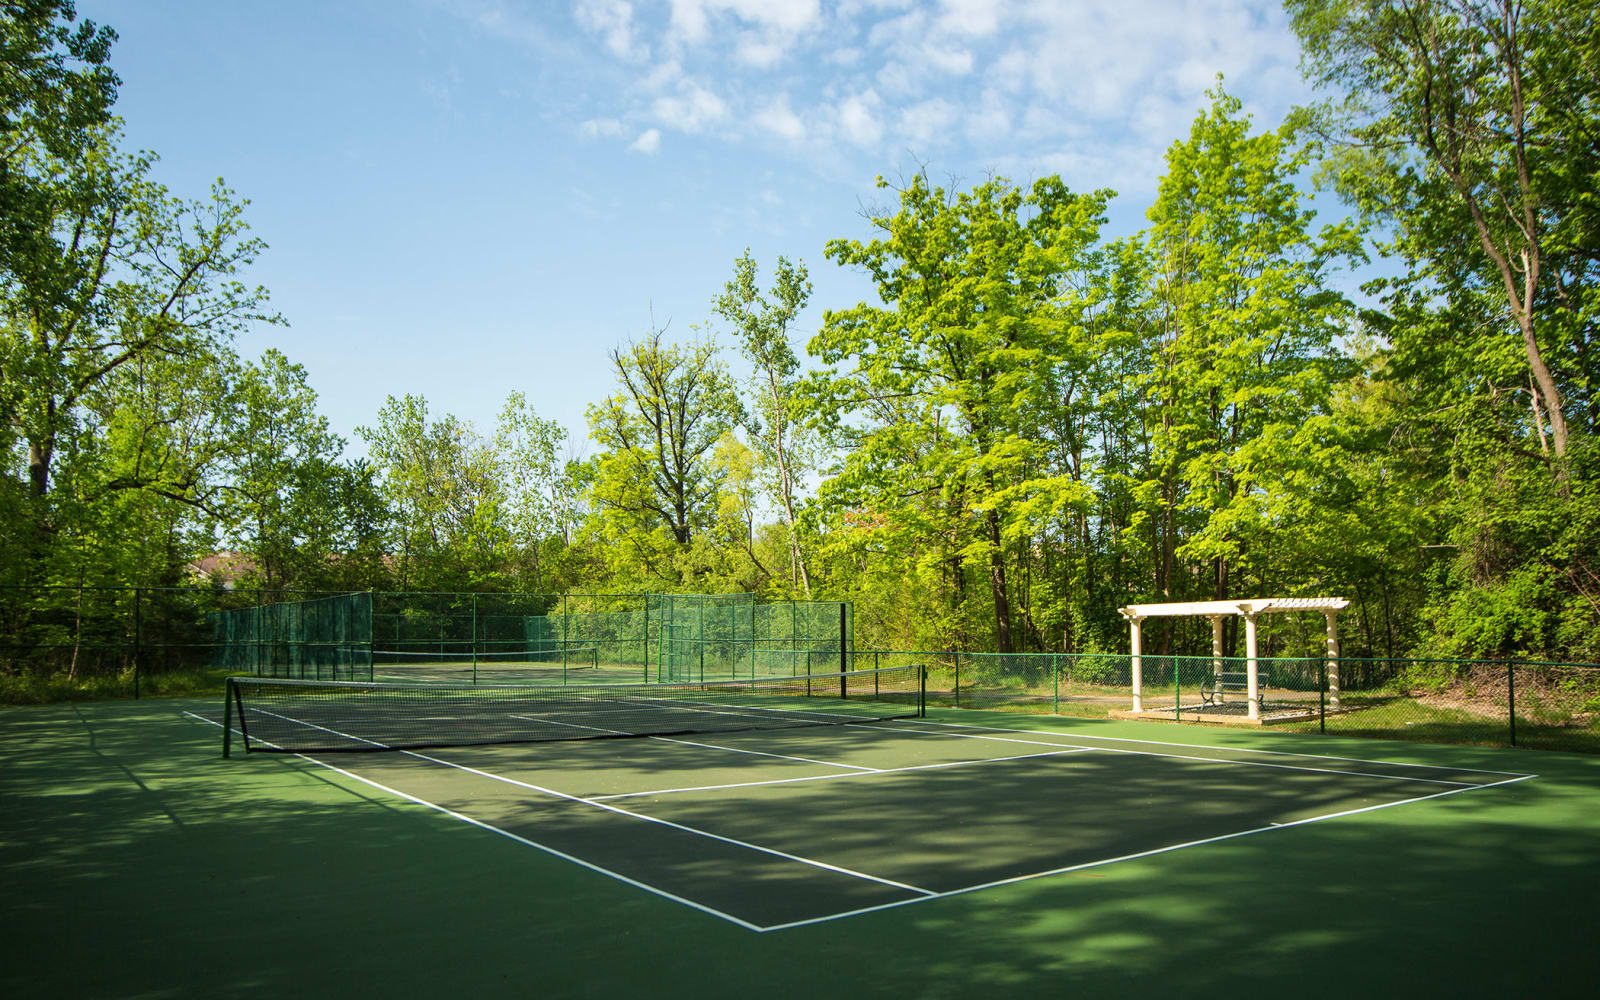 Tennis court at Aldingbrooke in West Bloomfield, Michigan